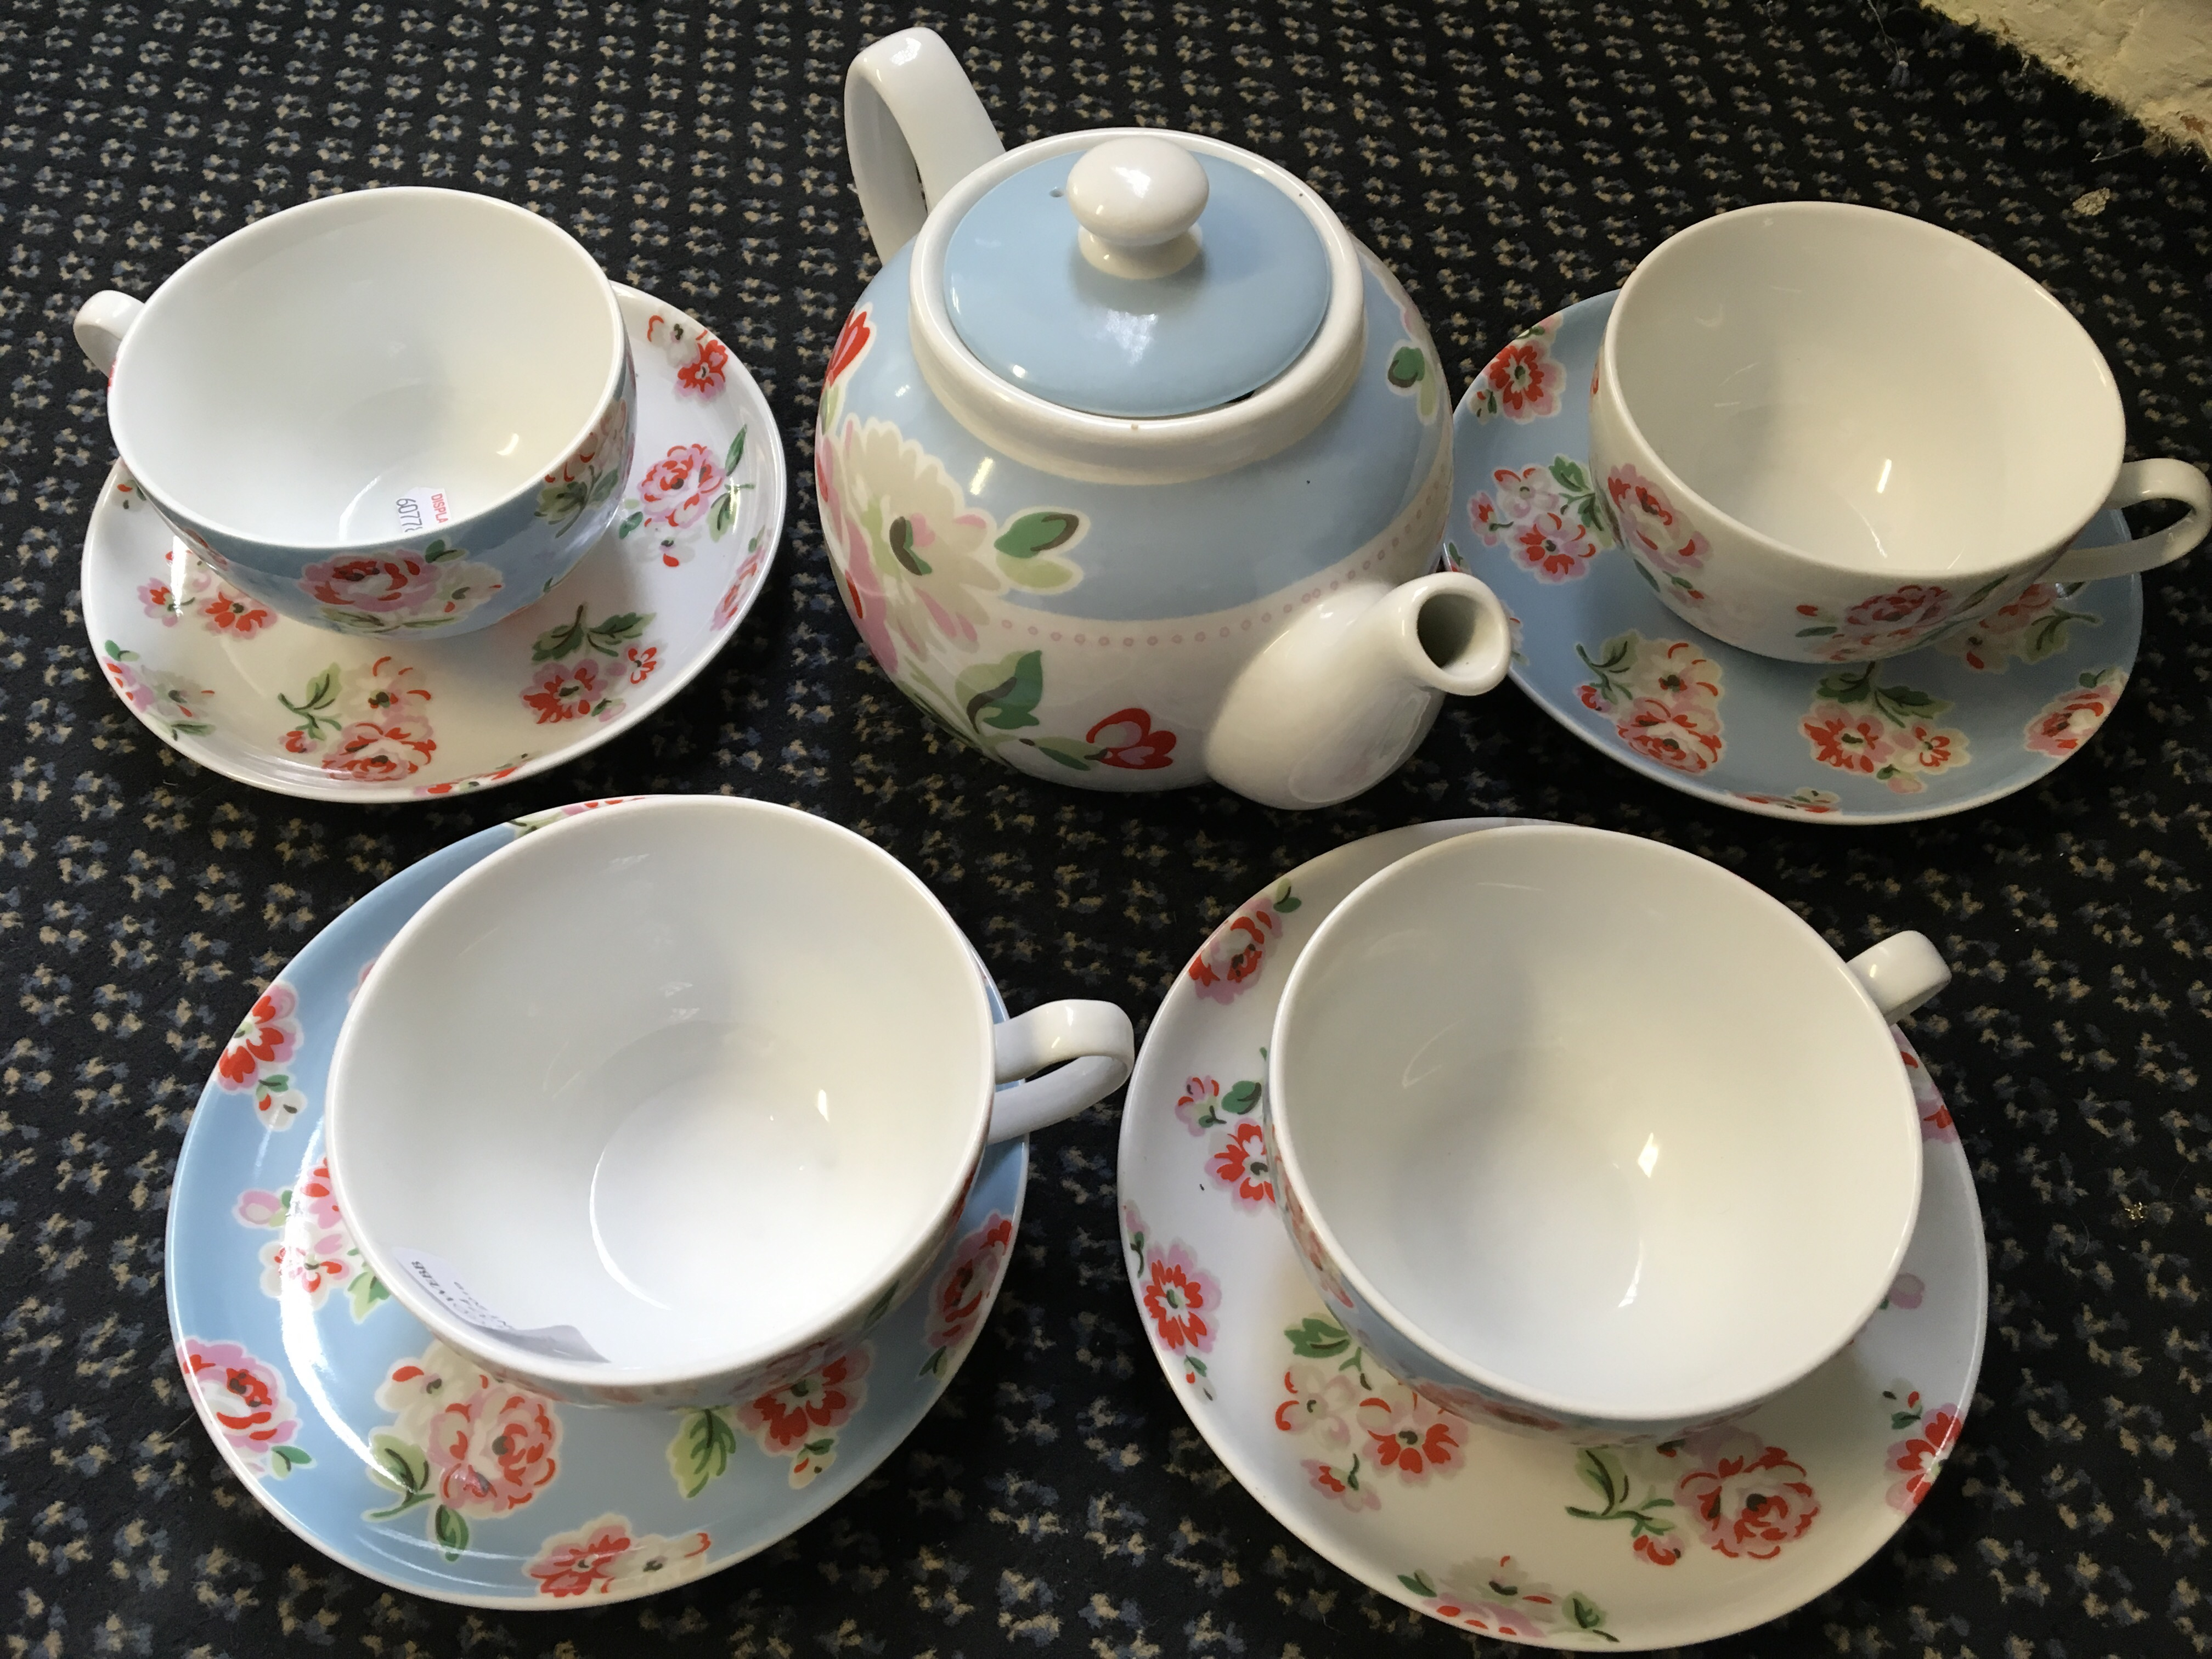 Lot 503 - A Cath Kidston tea set, 9 pieces in total.